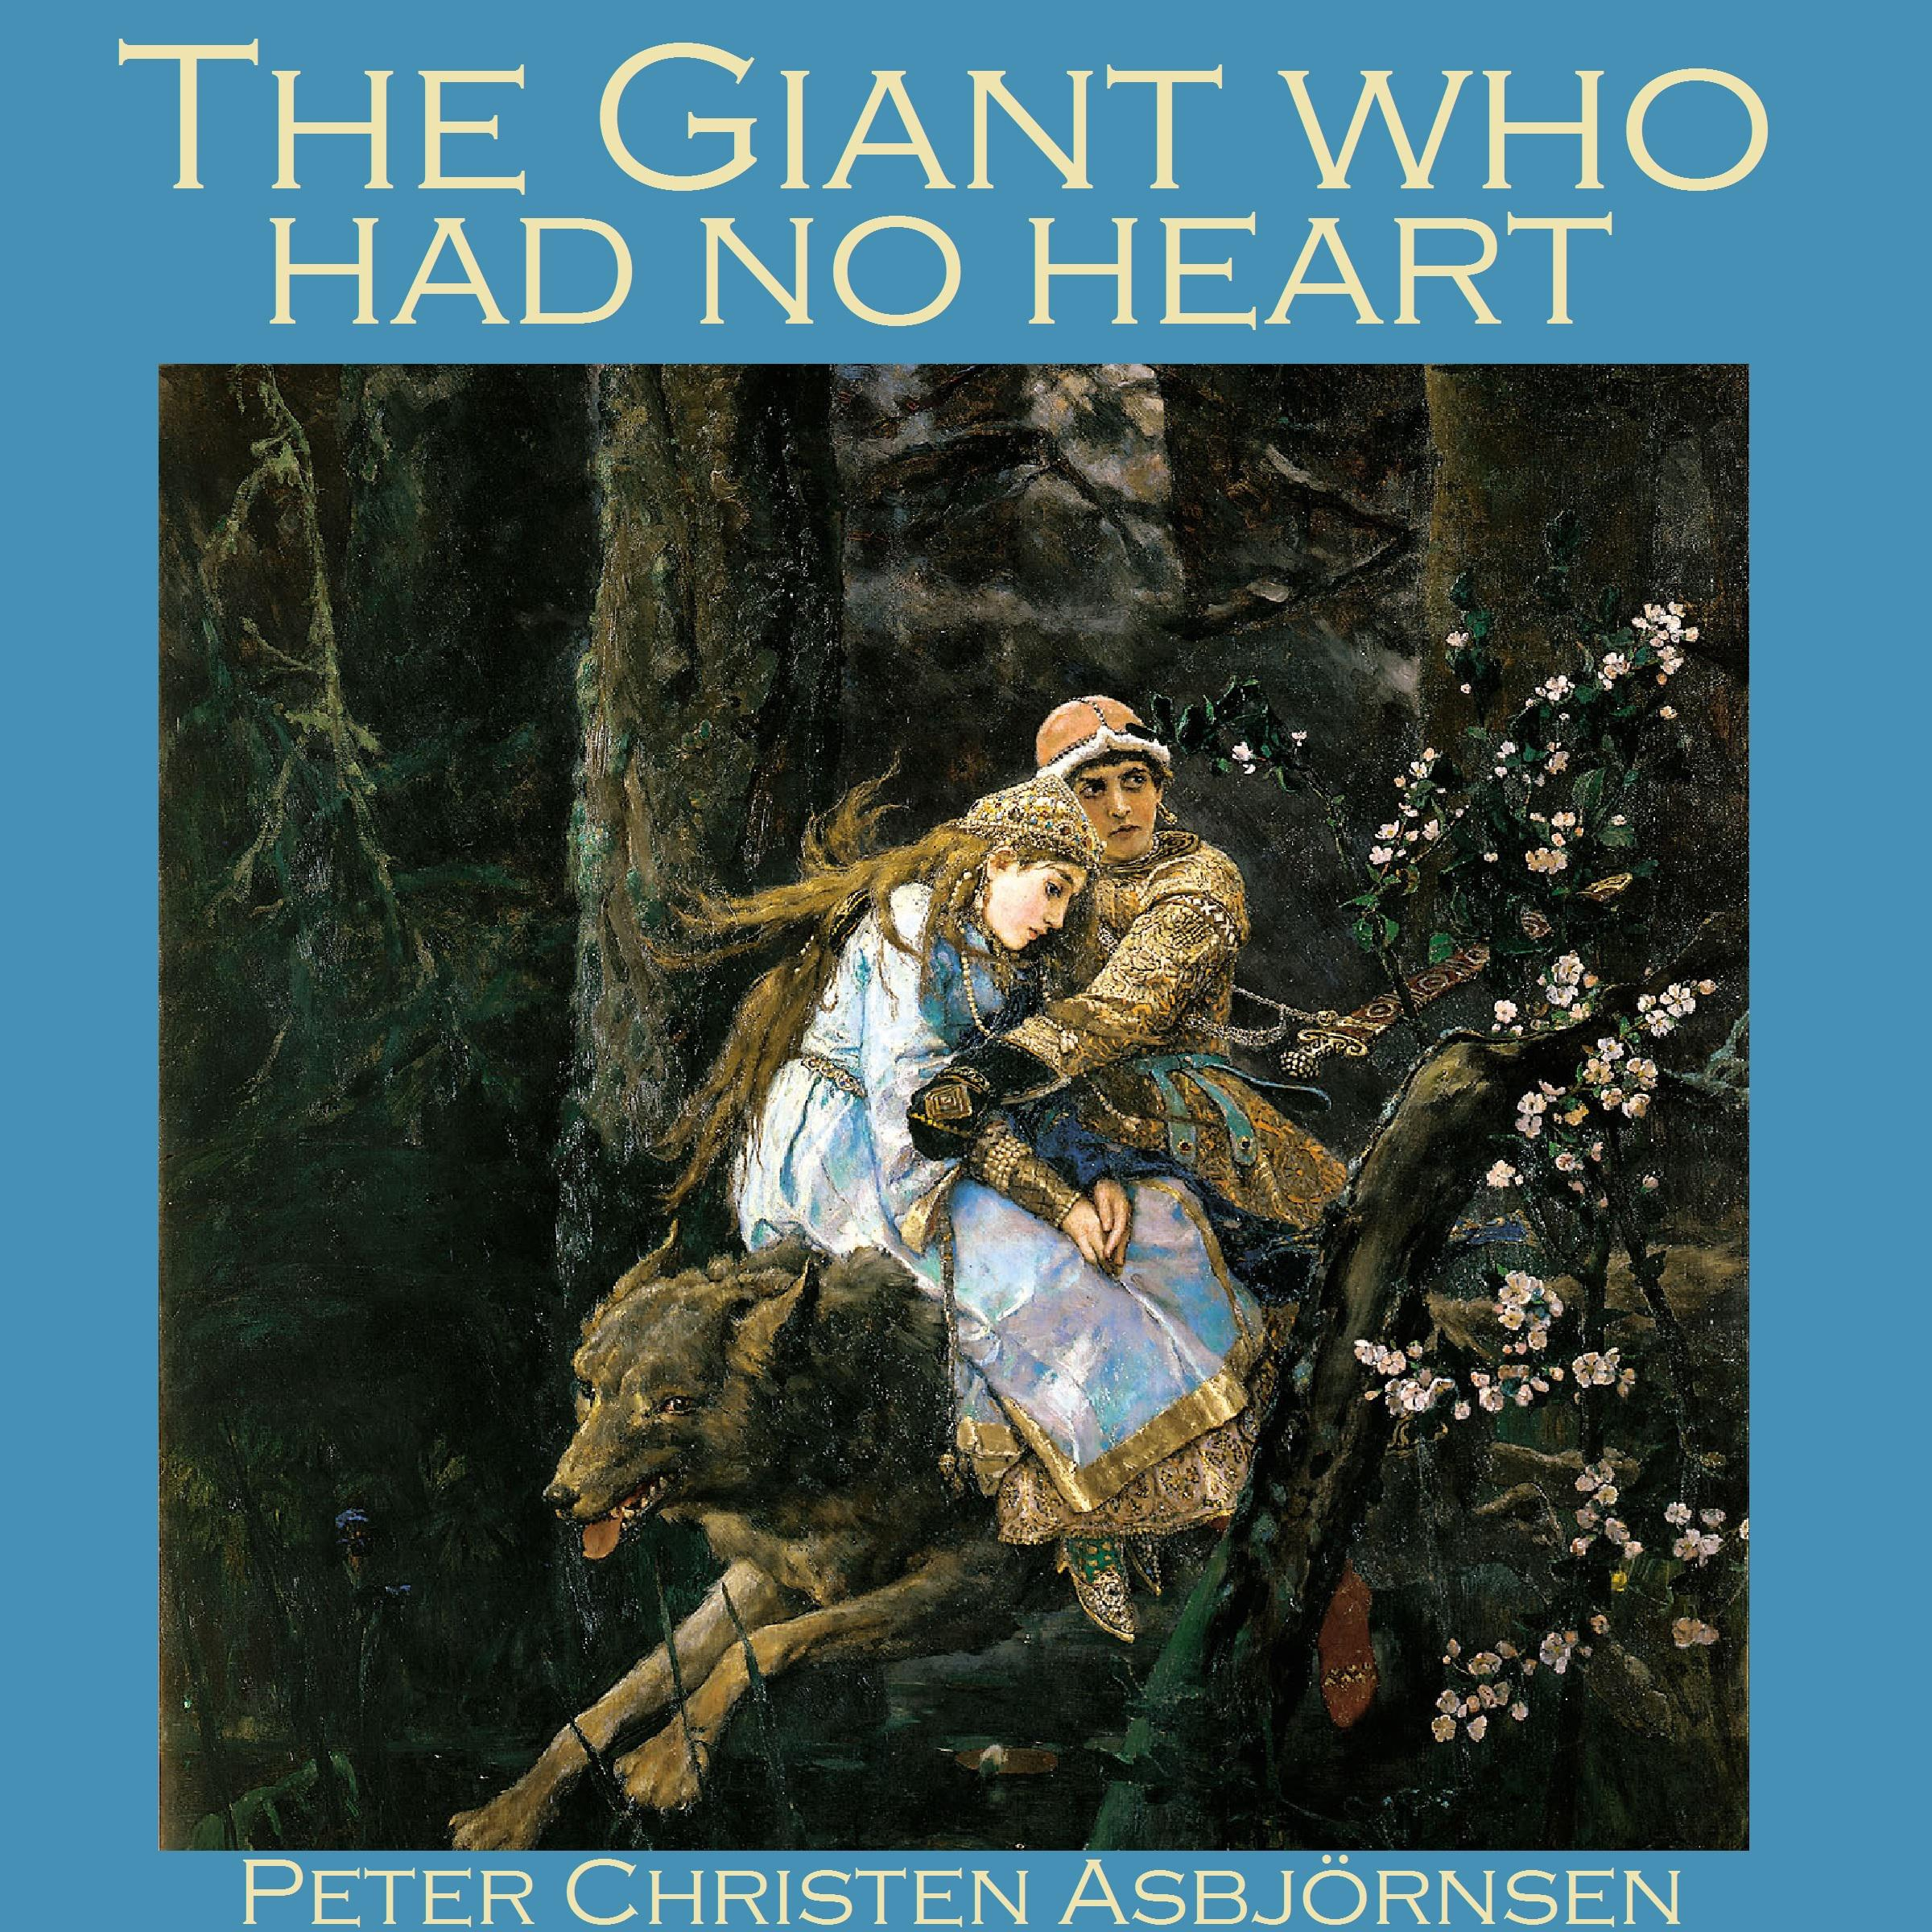 Printable The Giant who had no Heart Audiobook Cover Art